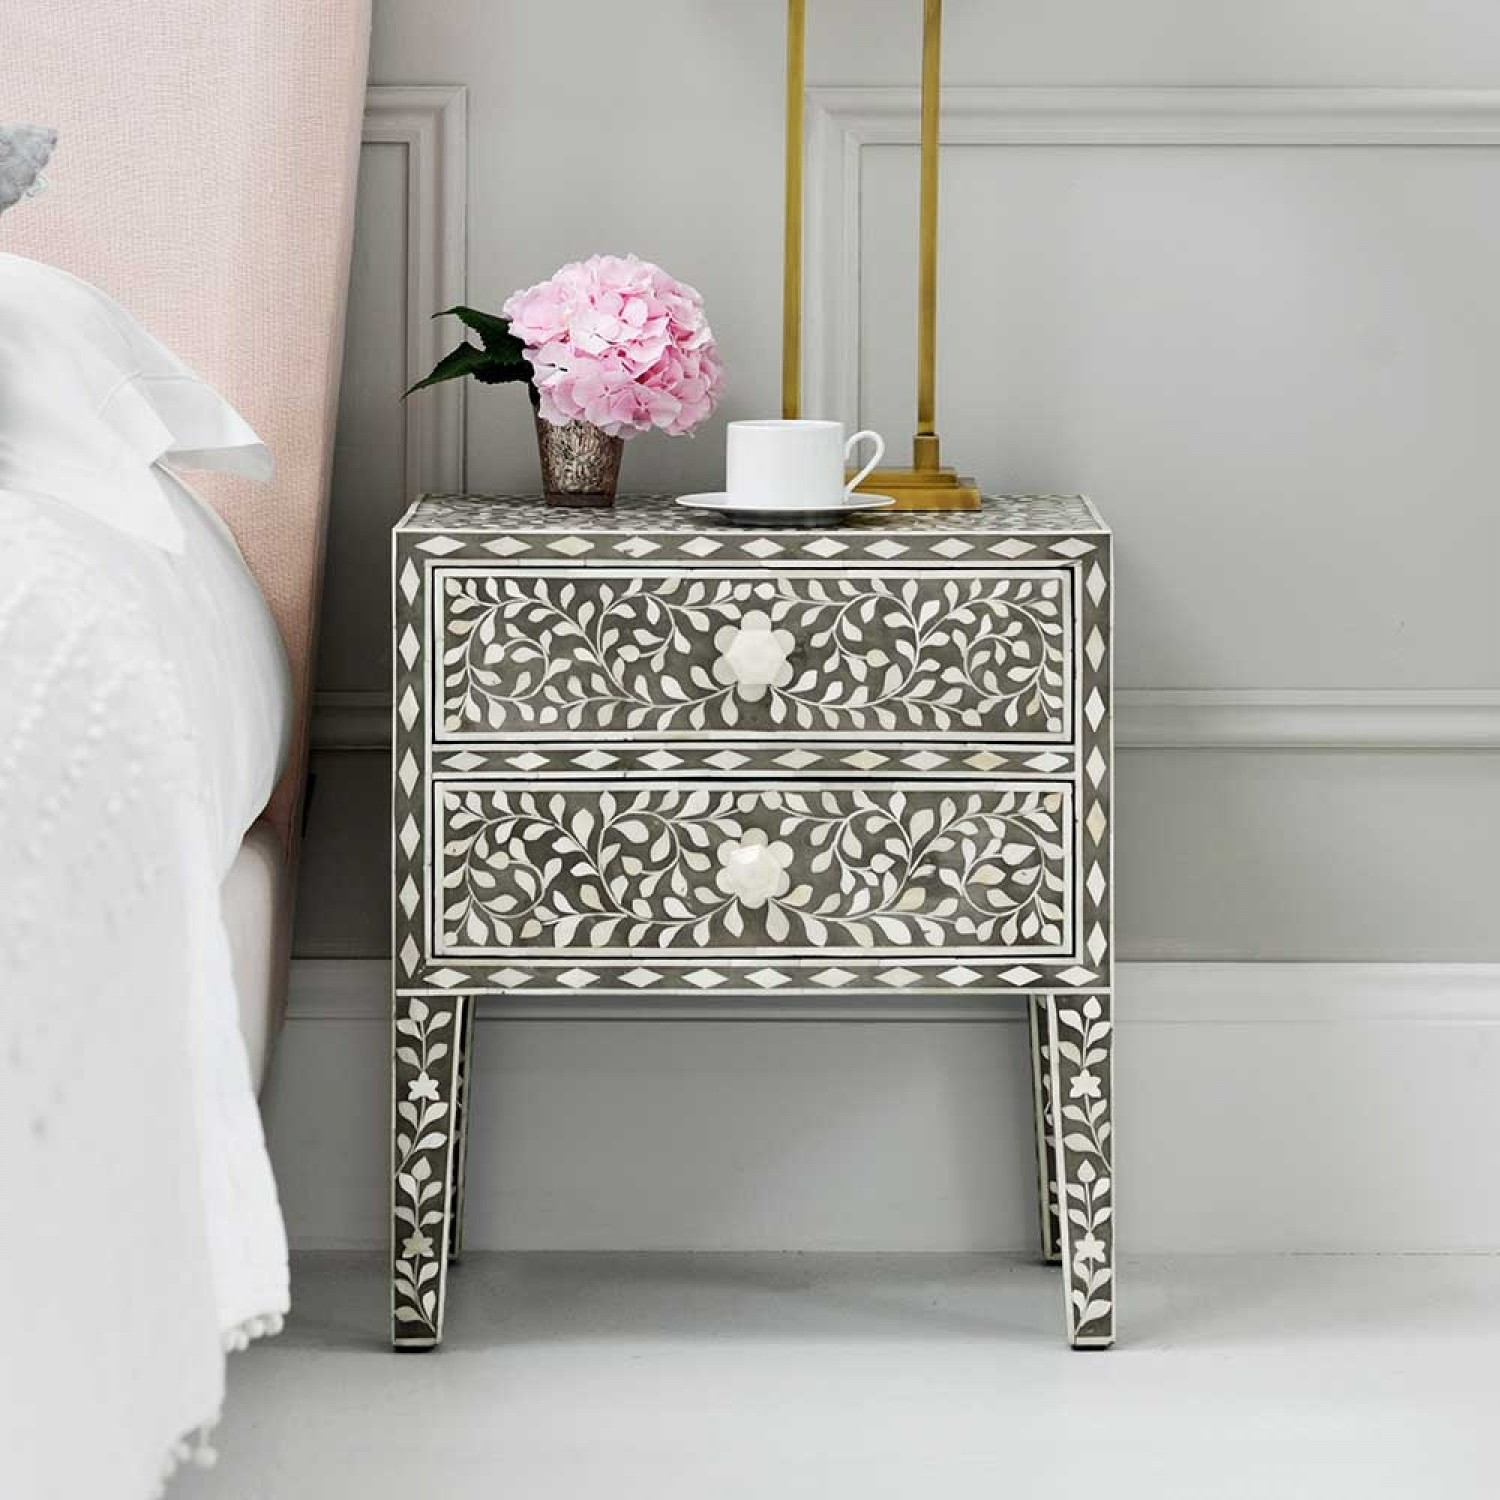 Mother Pearl Inlay Furniture Bone Tray Black Metal Nightstand Inside Black And White Inlay Console Tables (View 20 of 20)